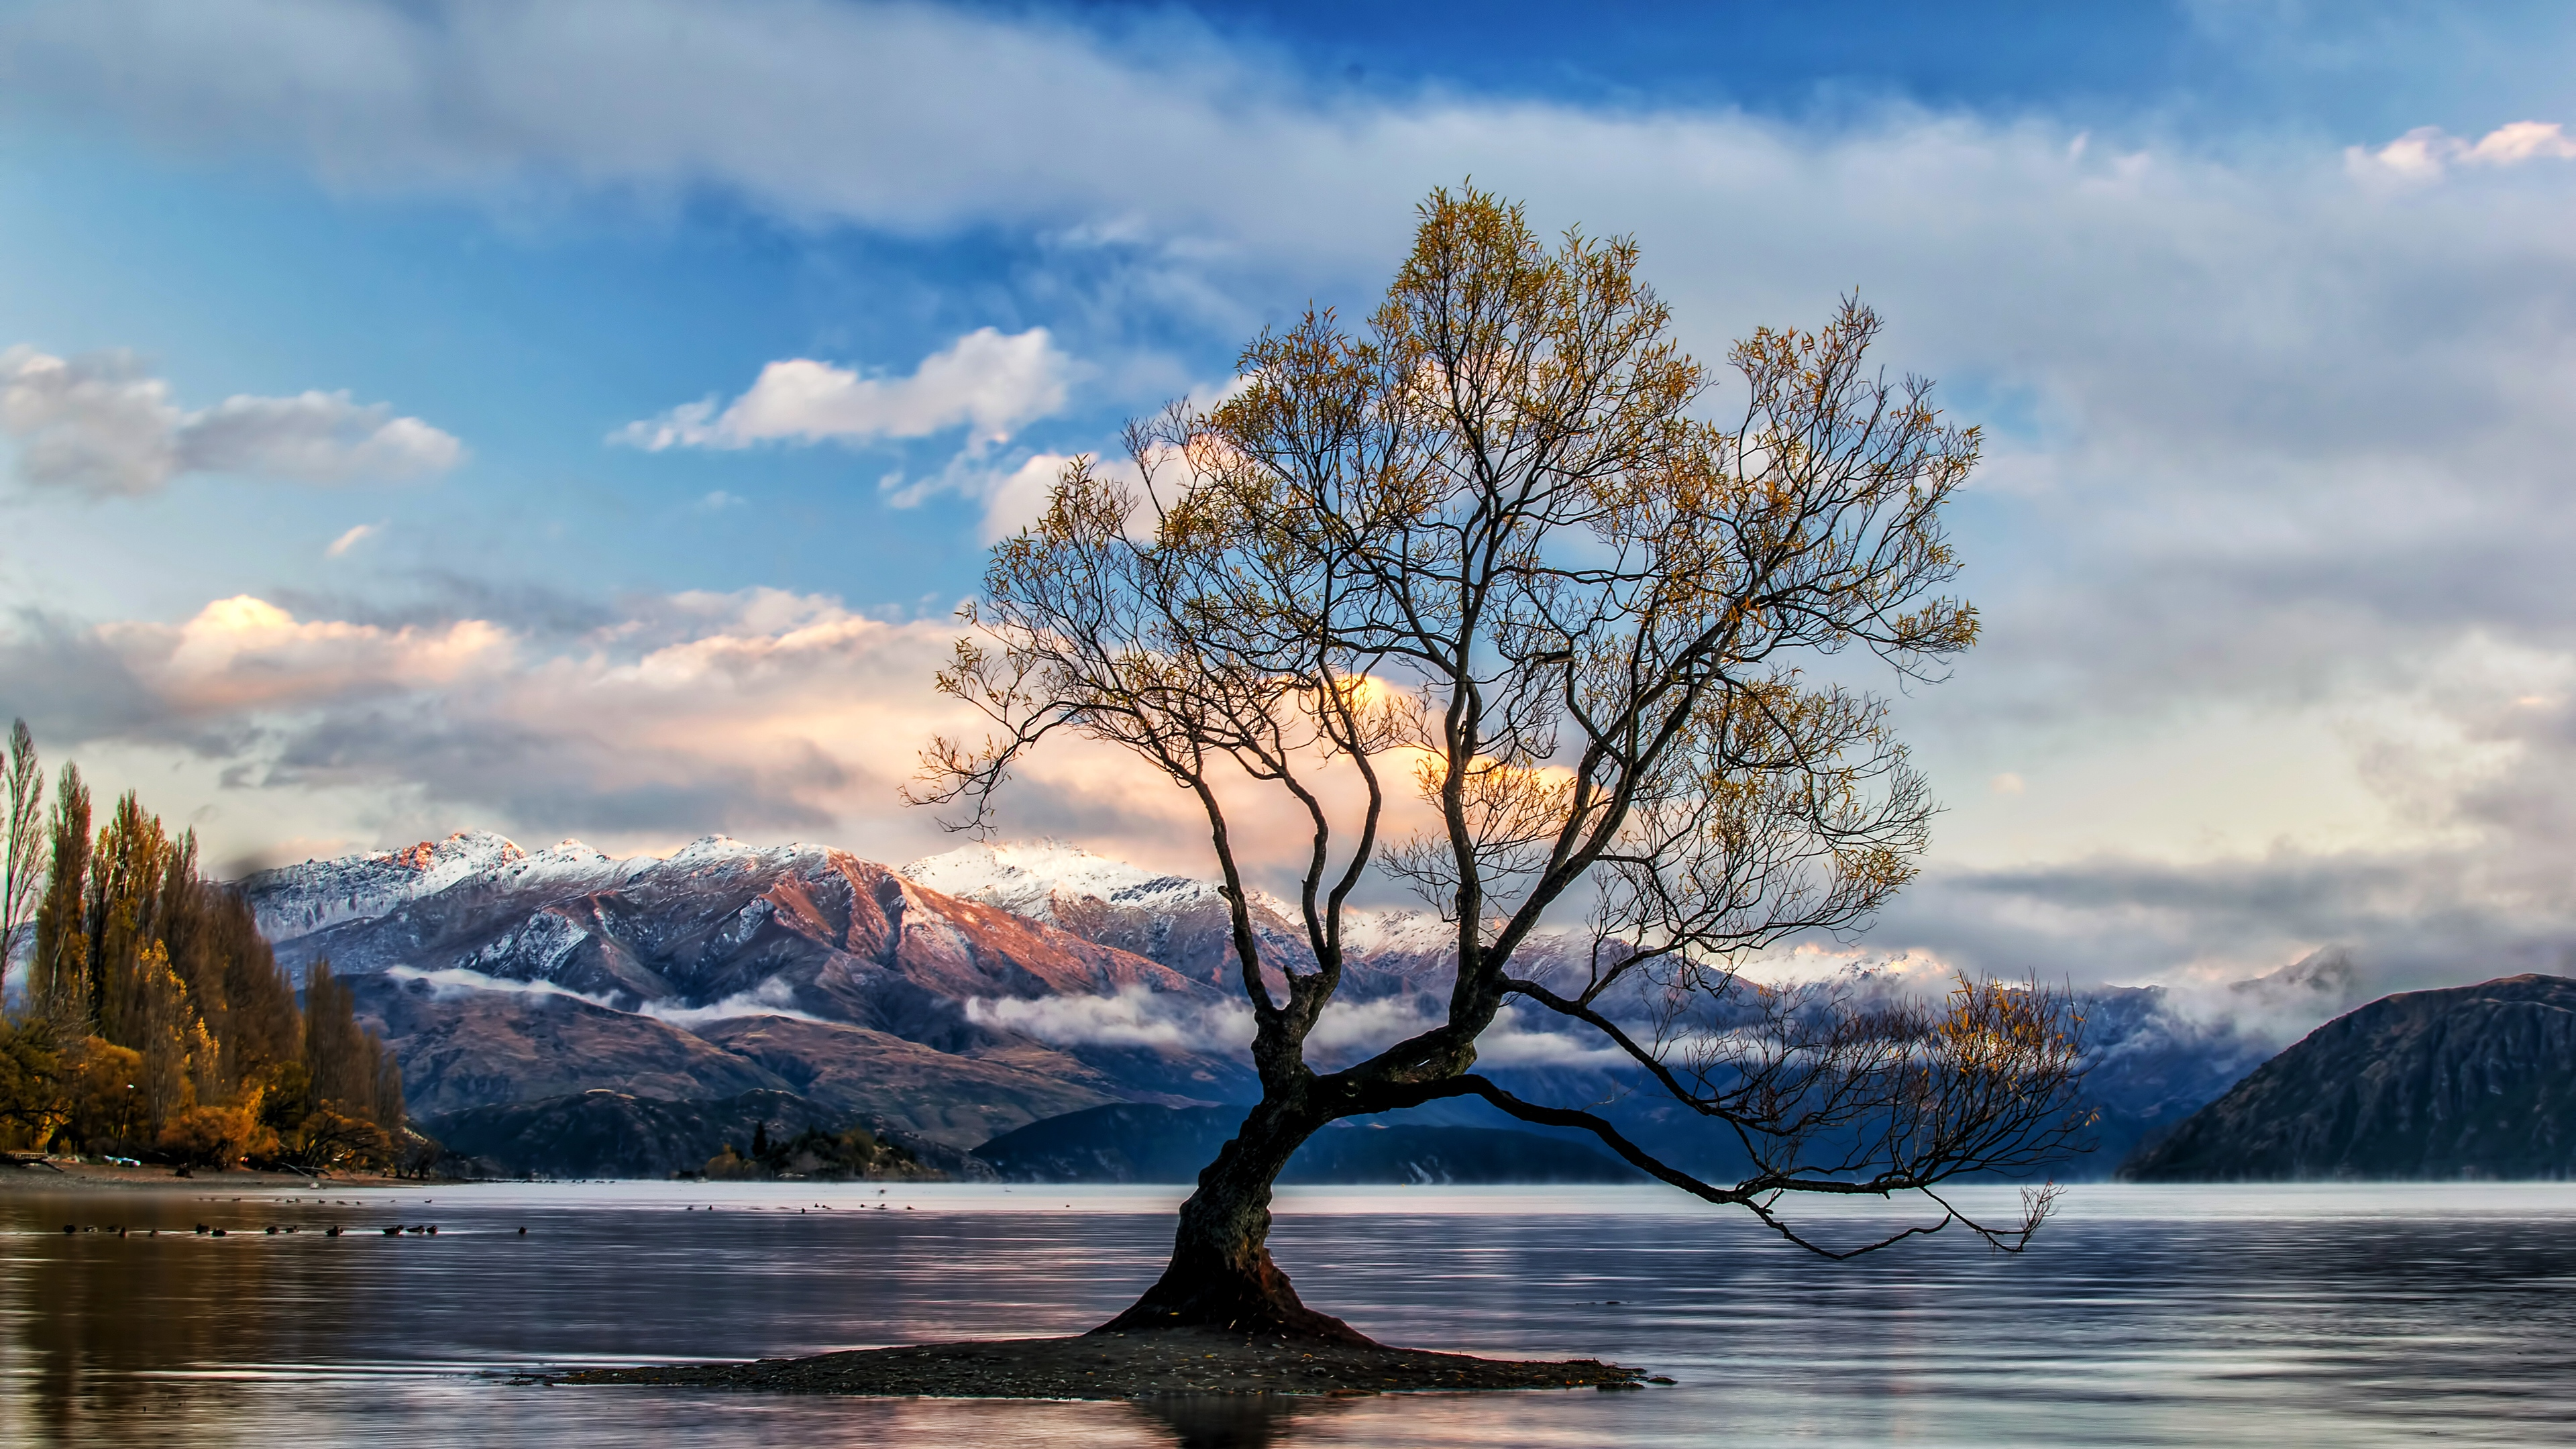 lone tree lake wanaka 4k 1540136229 - Lone Tree Lake Wanaka 4k - tree wallpapers, new zealand wallpapers, nature wallpapers, lake wanaka wallpapers, lake wallpapers, hd-wallpapers, 5k wallpapers, 4k-wallpapers